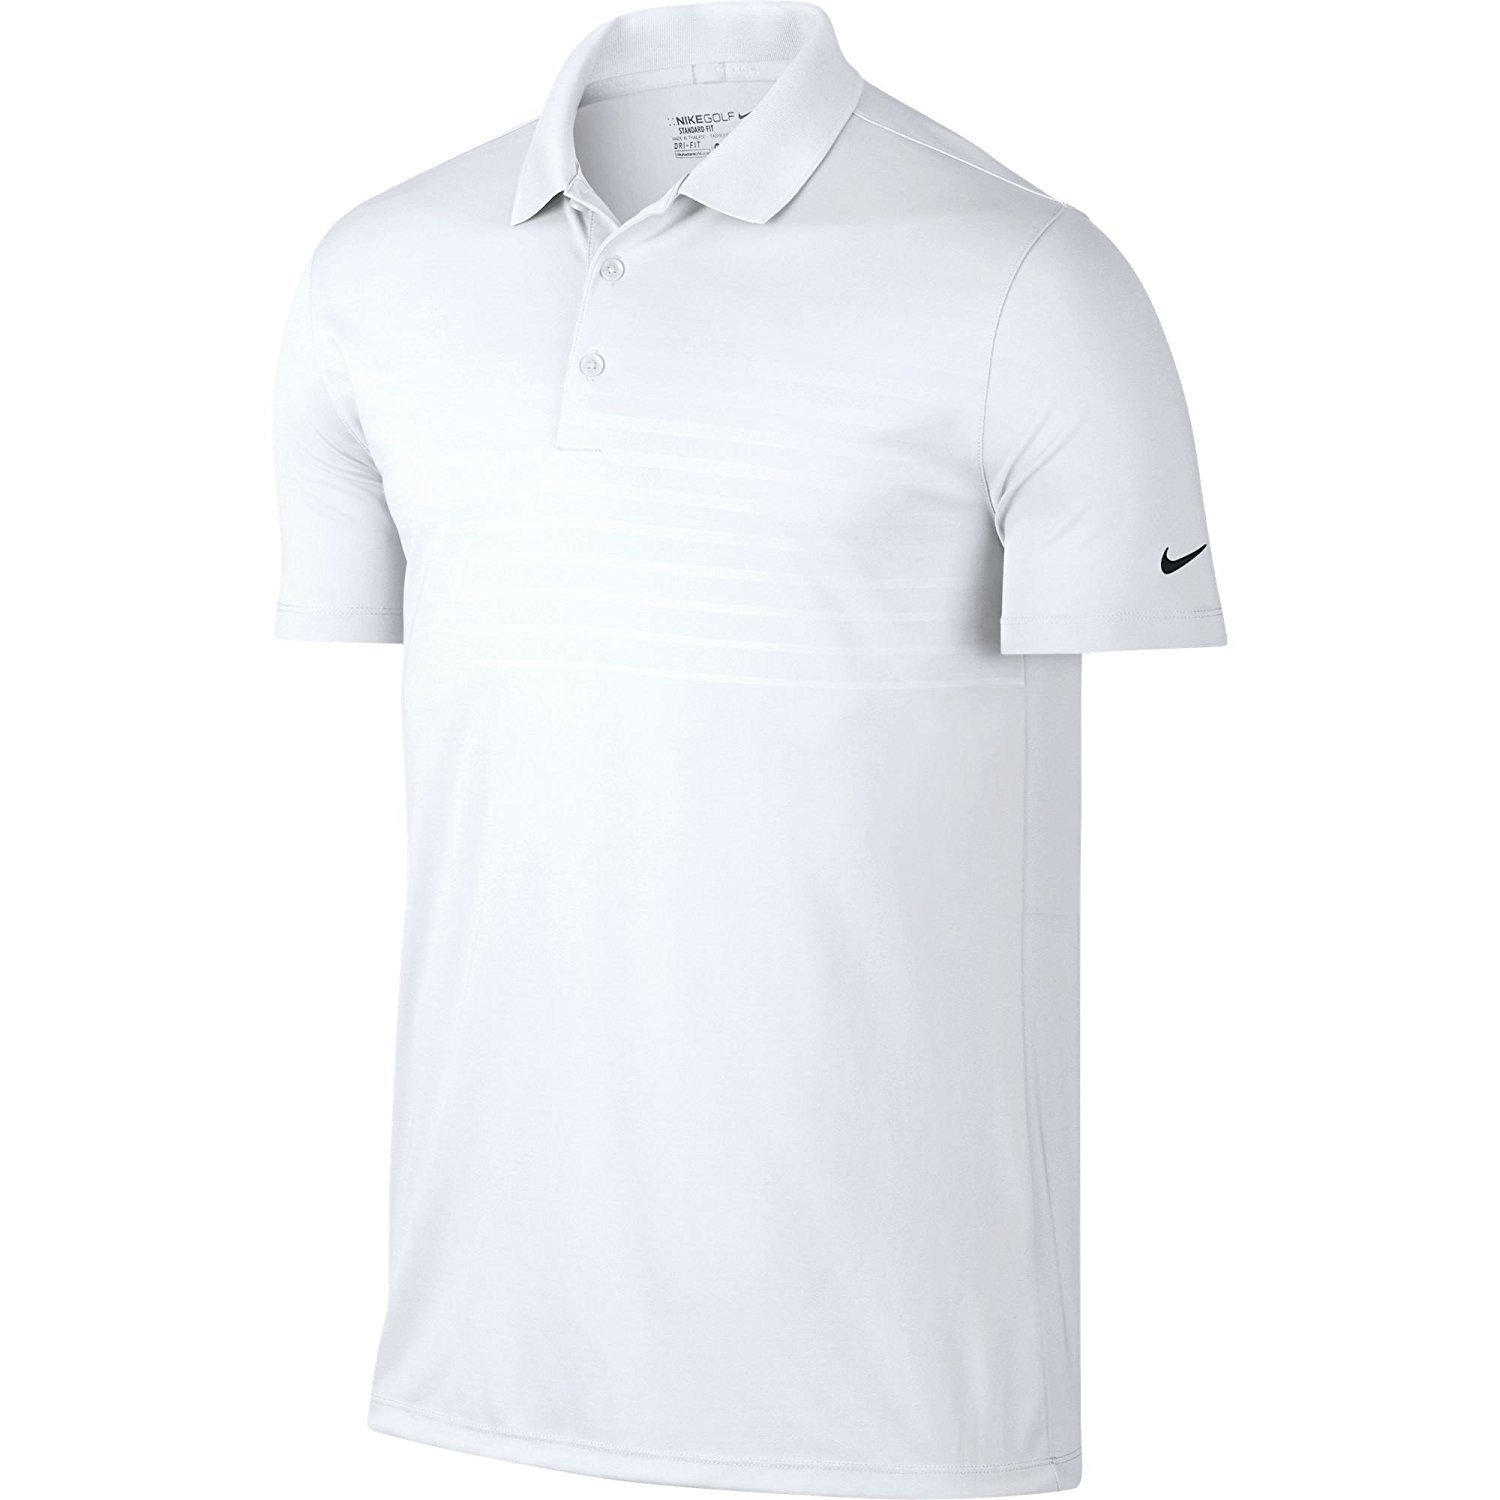 25fe02d7 Amazon.com: Dallas Cowboys Nike Golf Embossed Victory 2.0 Polo: Nike:  Clothing